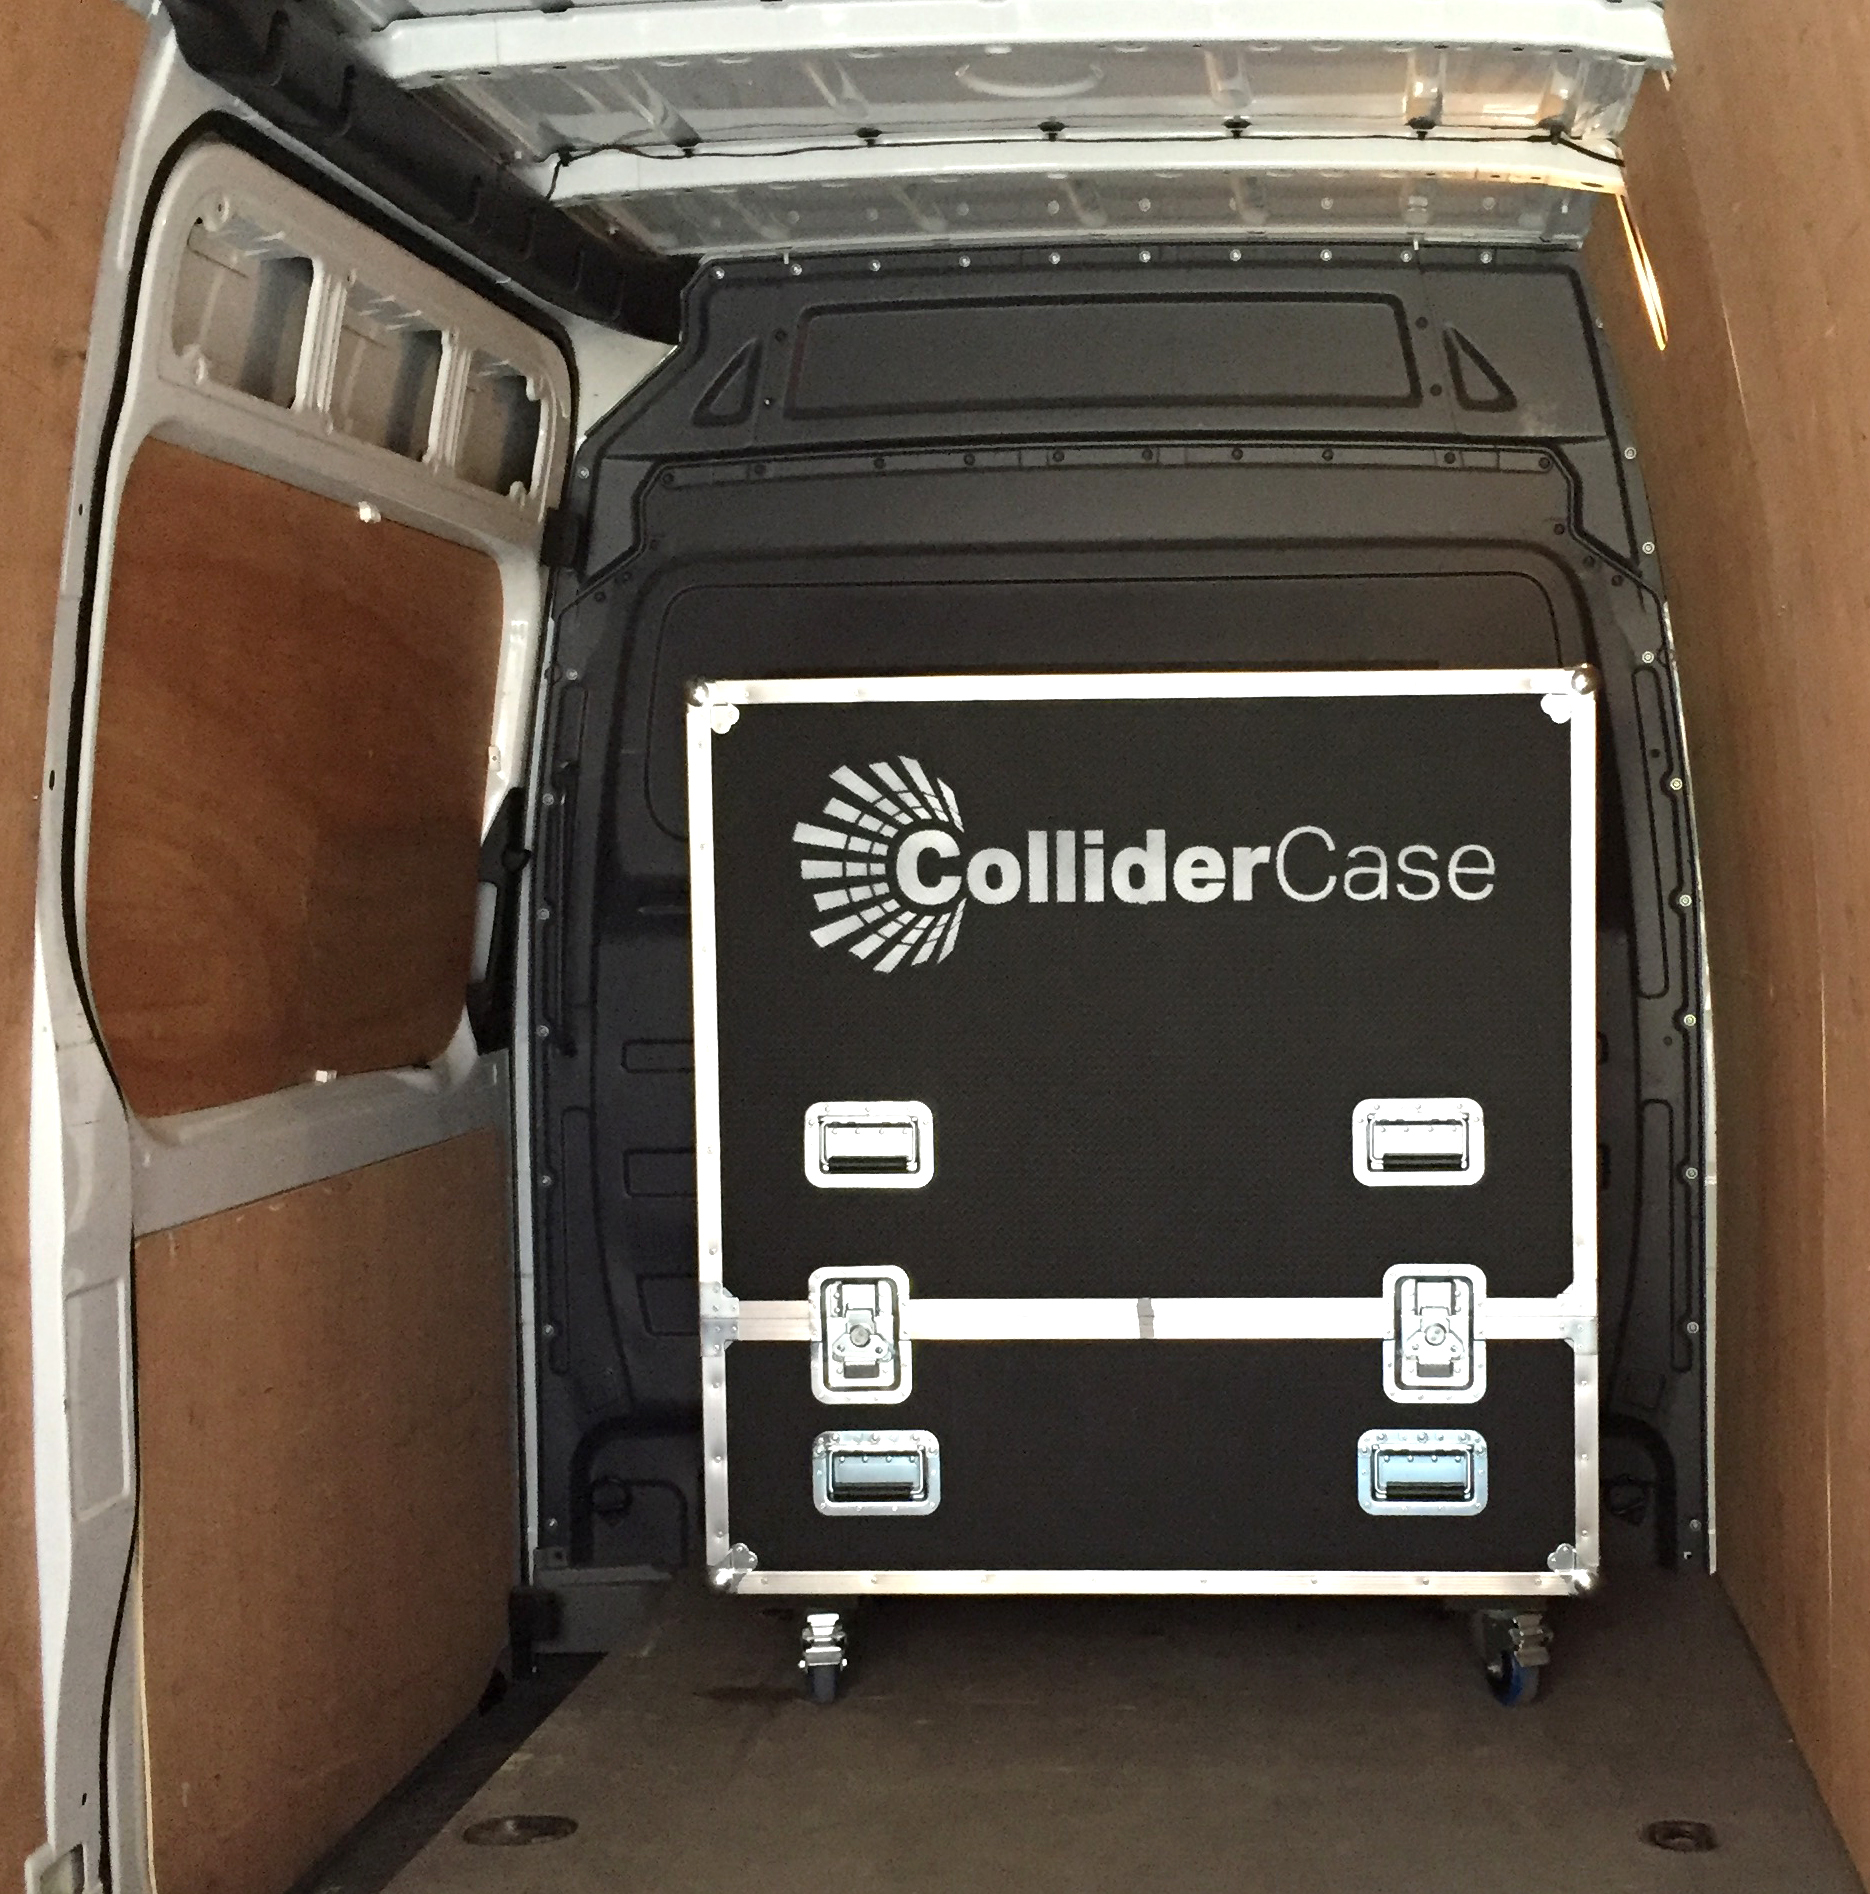 Bespoke wheeled flight cases provide robust protection and easy transportation for a touring  ColliderCase .